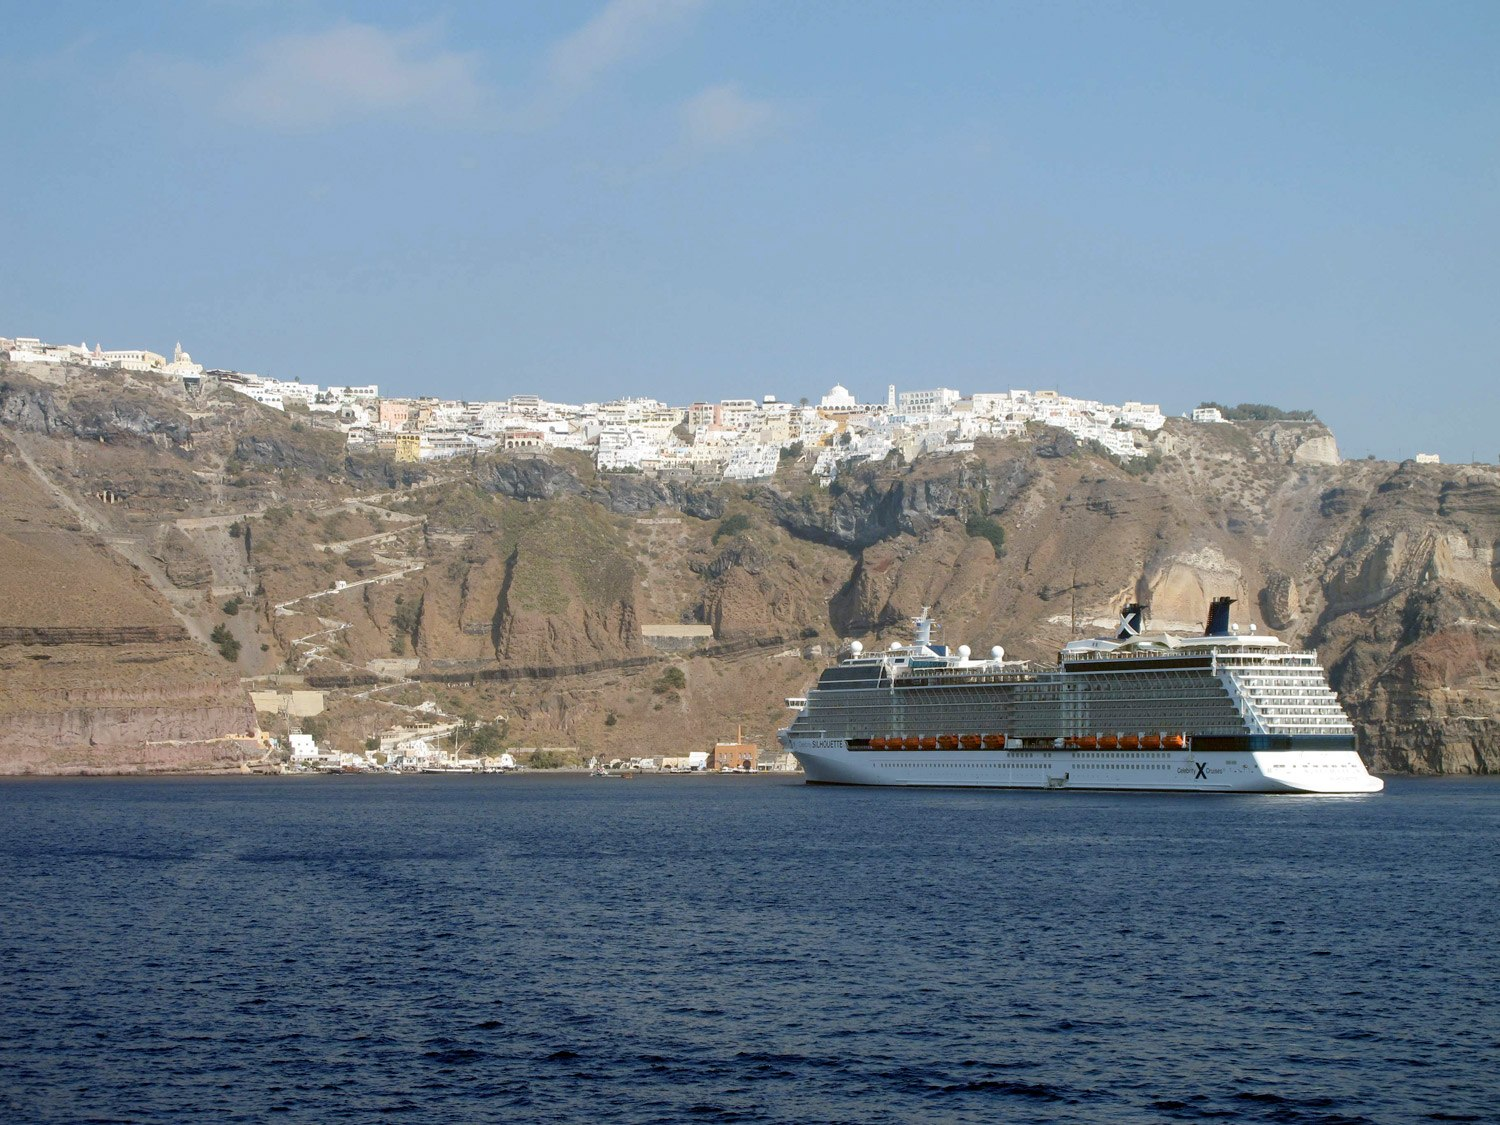 Thousands of travelers arrive in cruise ships at Santorini and this is the spectacular view of Fira!